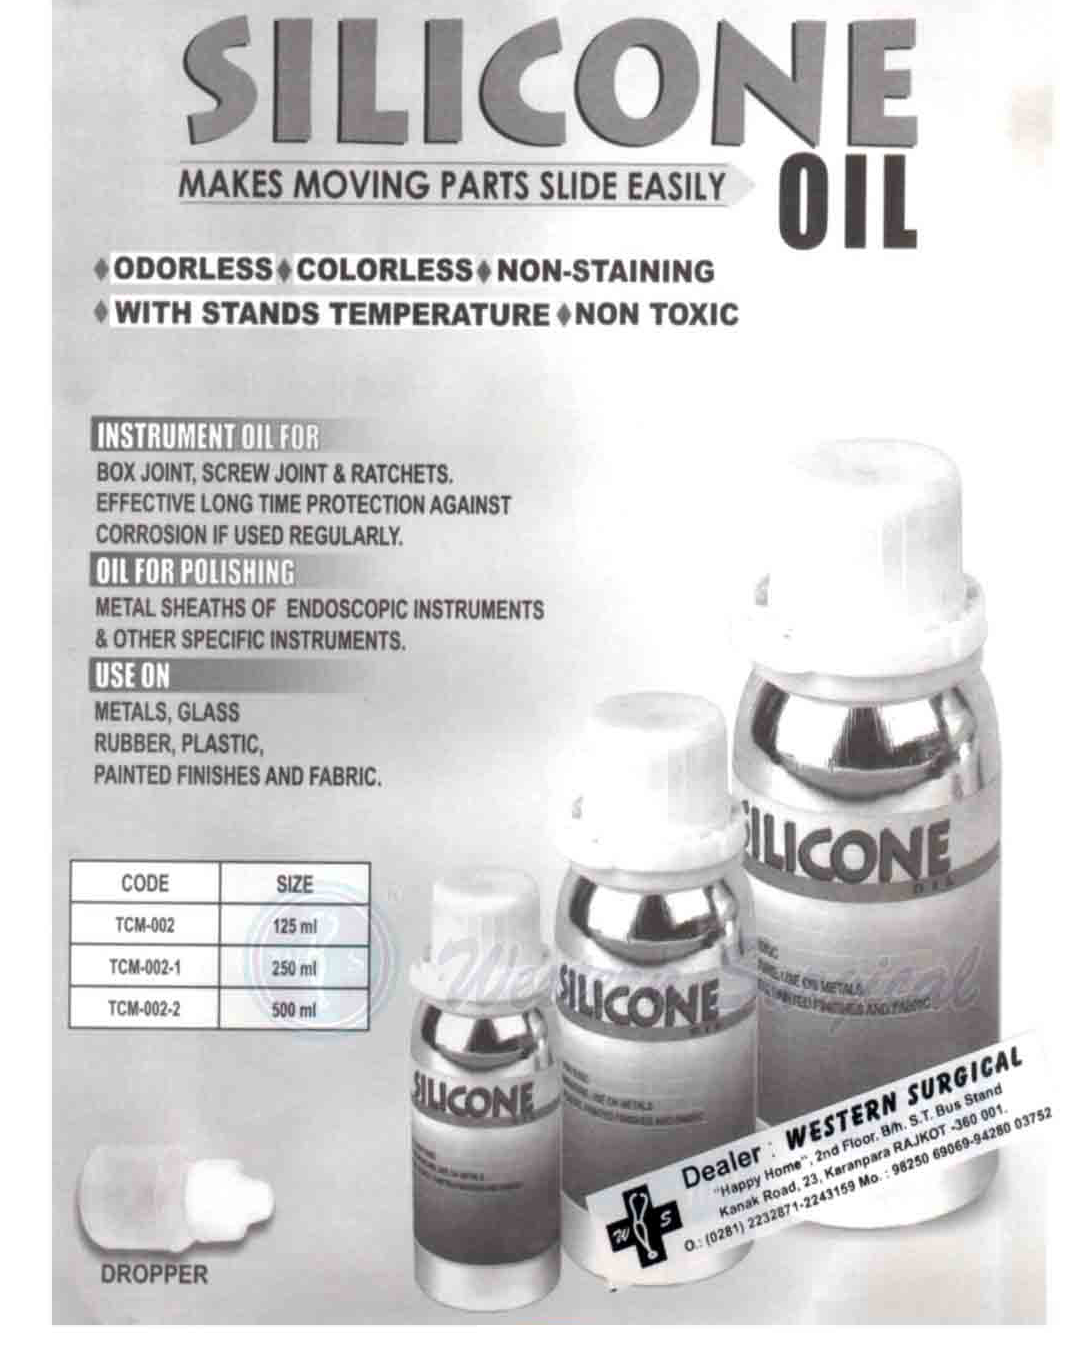 Slicone Makes moving parts slide easily oil